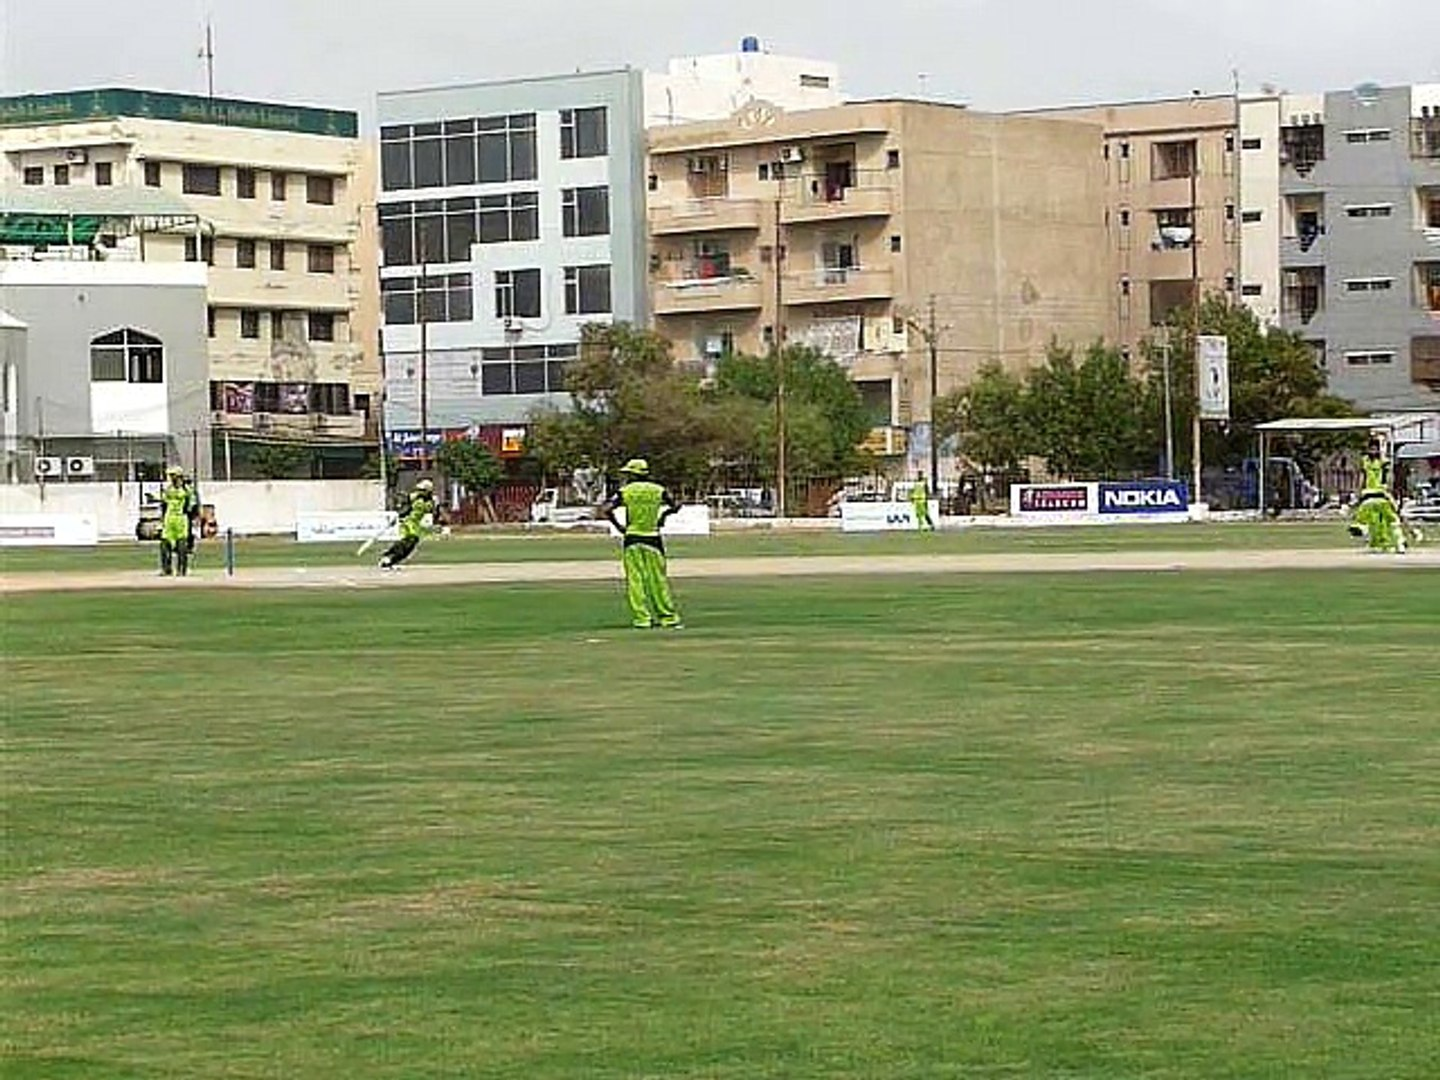 10 OF 12 ANWAR ALI TAKES 3 & SAAD NASIM HITS A FLAT SIX *** 16-07-2014 CRICKET COMMENTARY BY : P